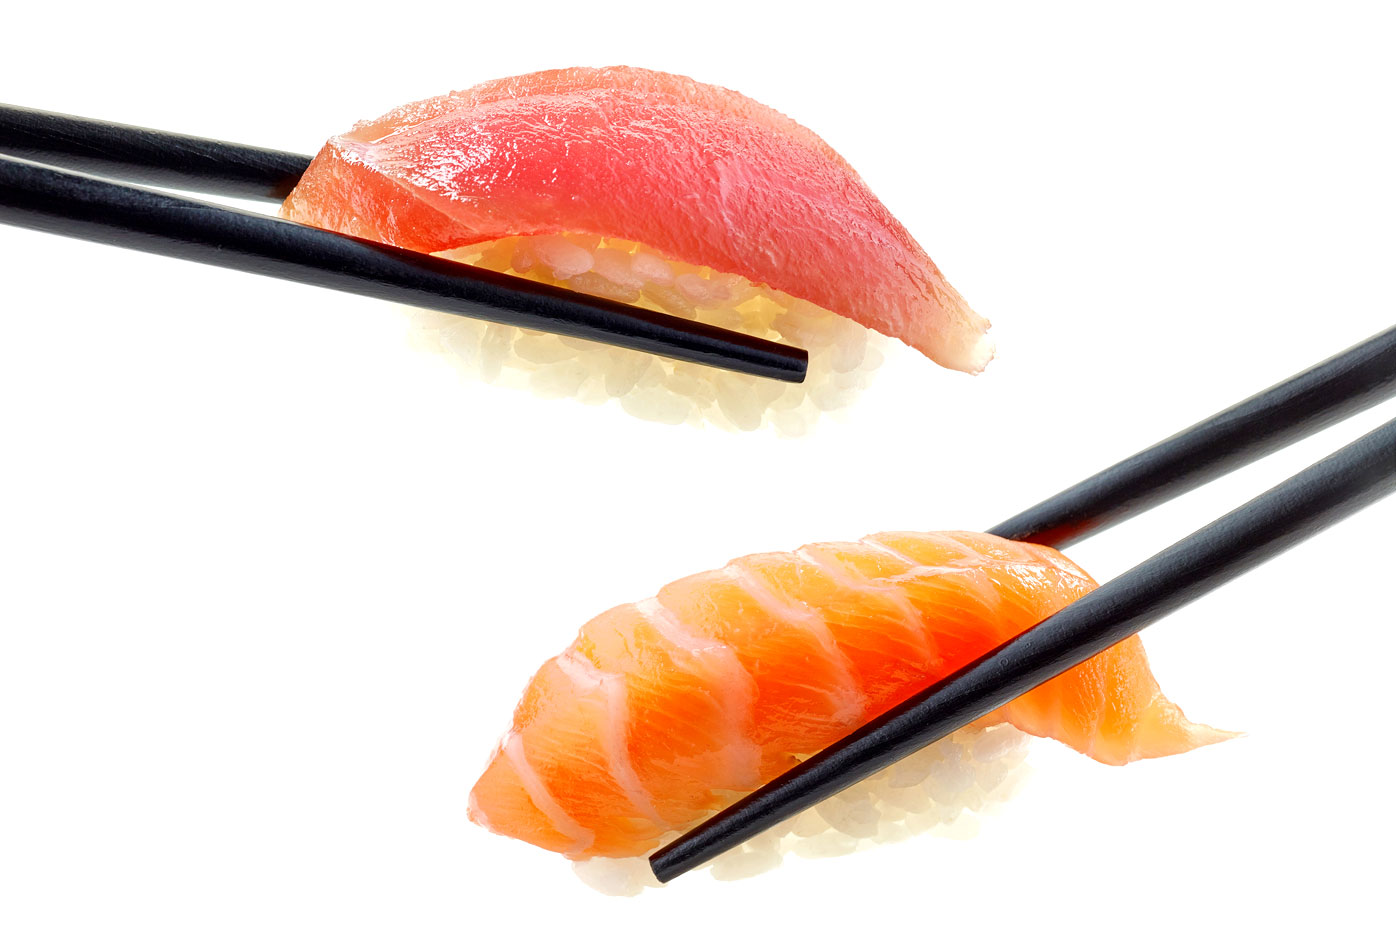 Oily fish: salmon, tuna and mackerel